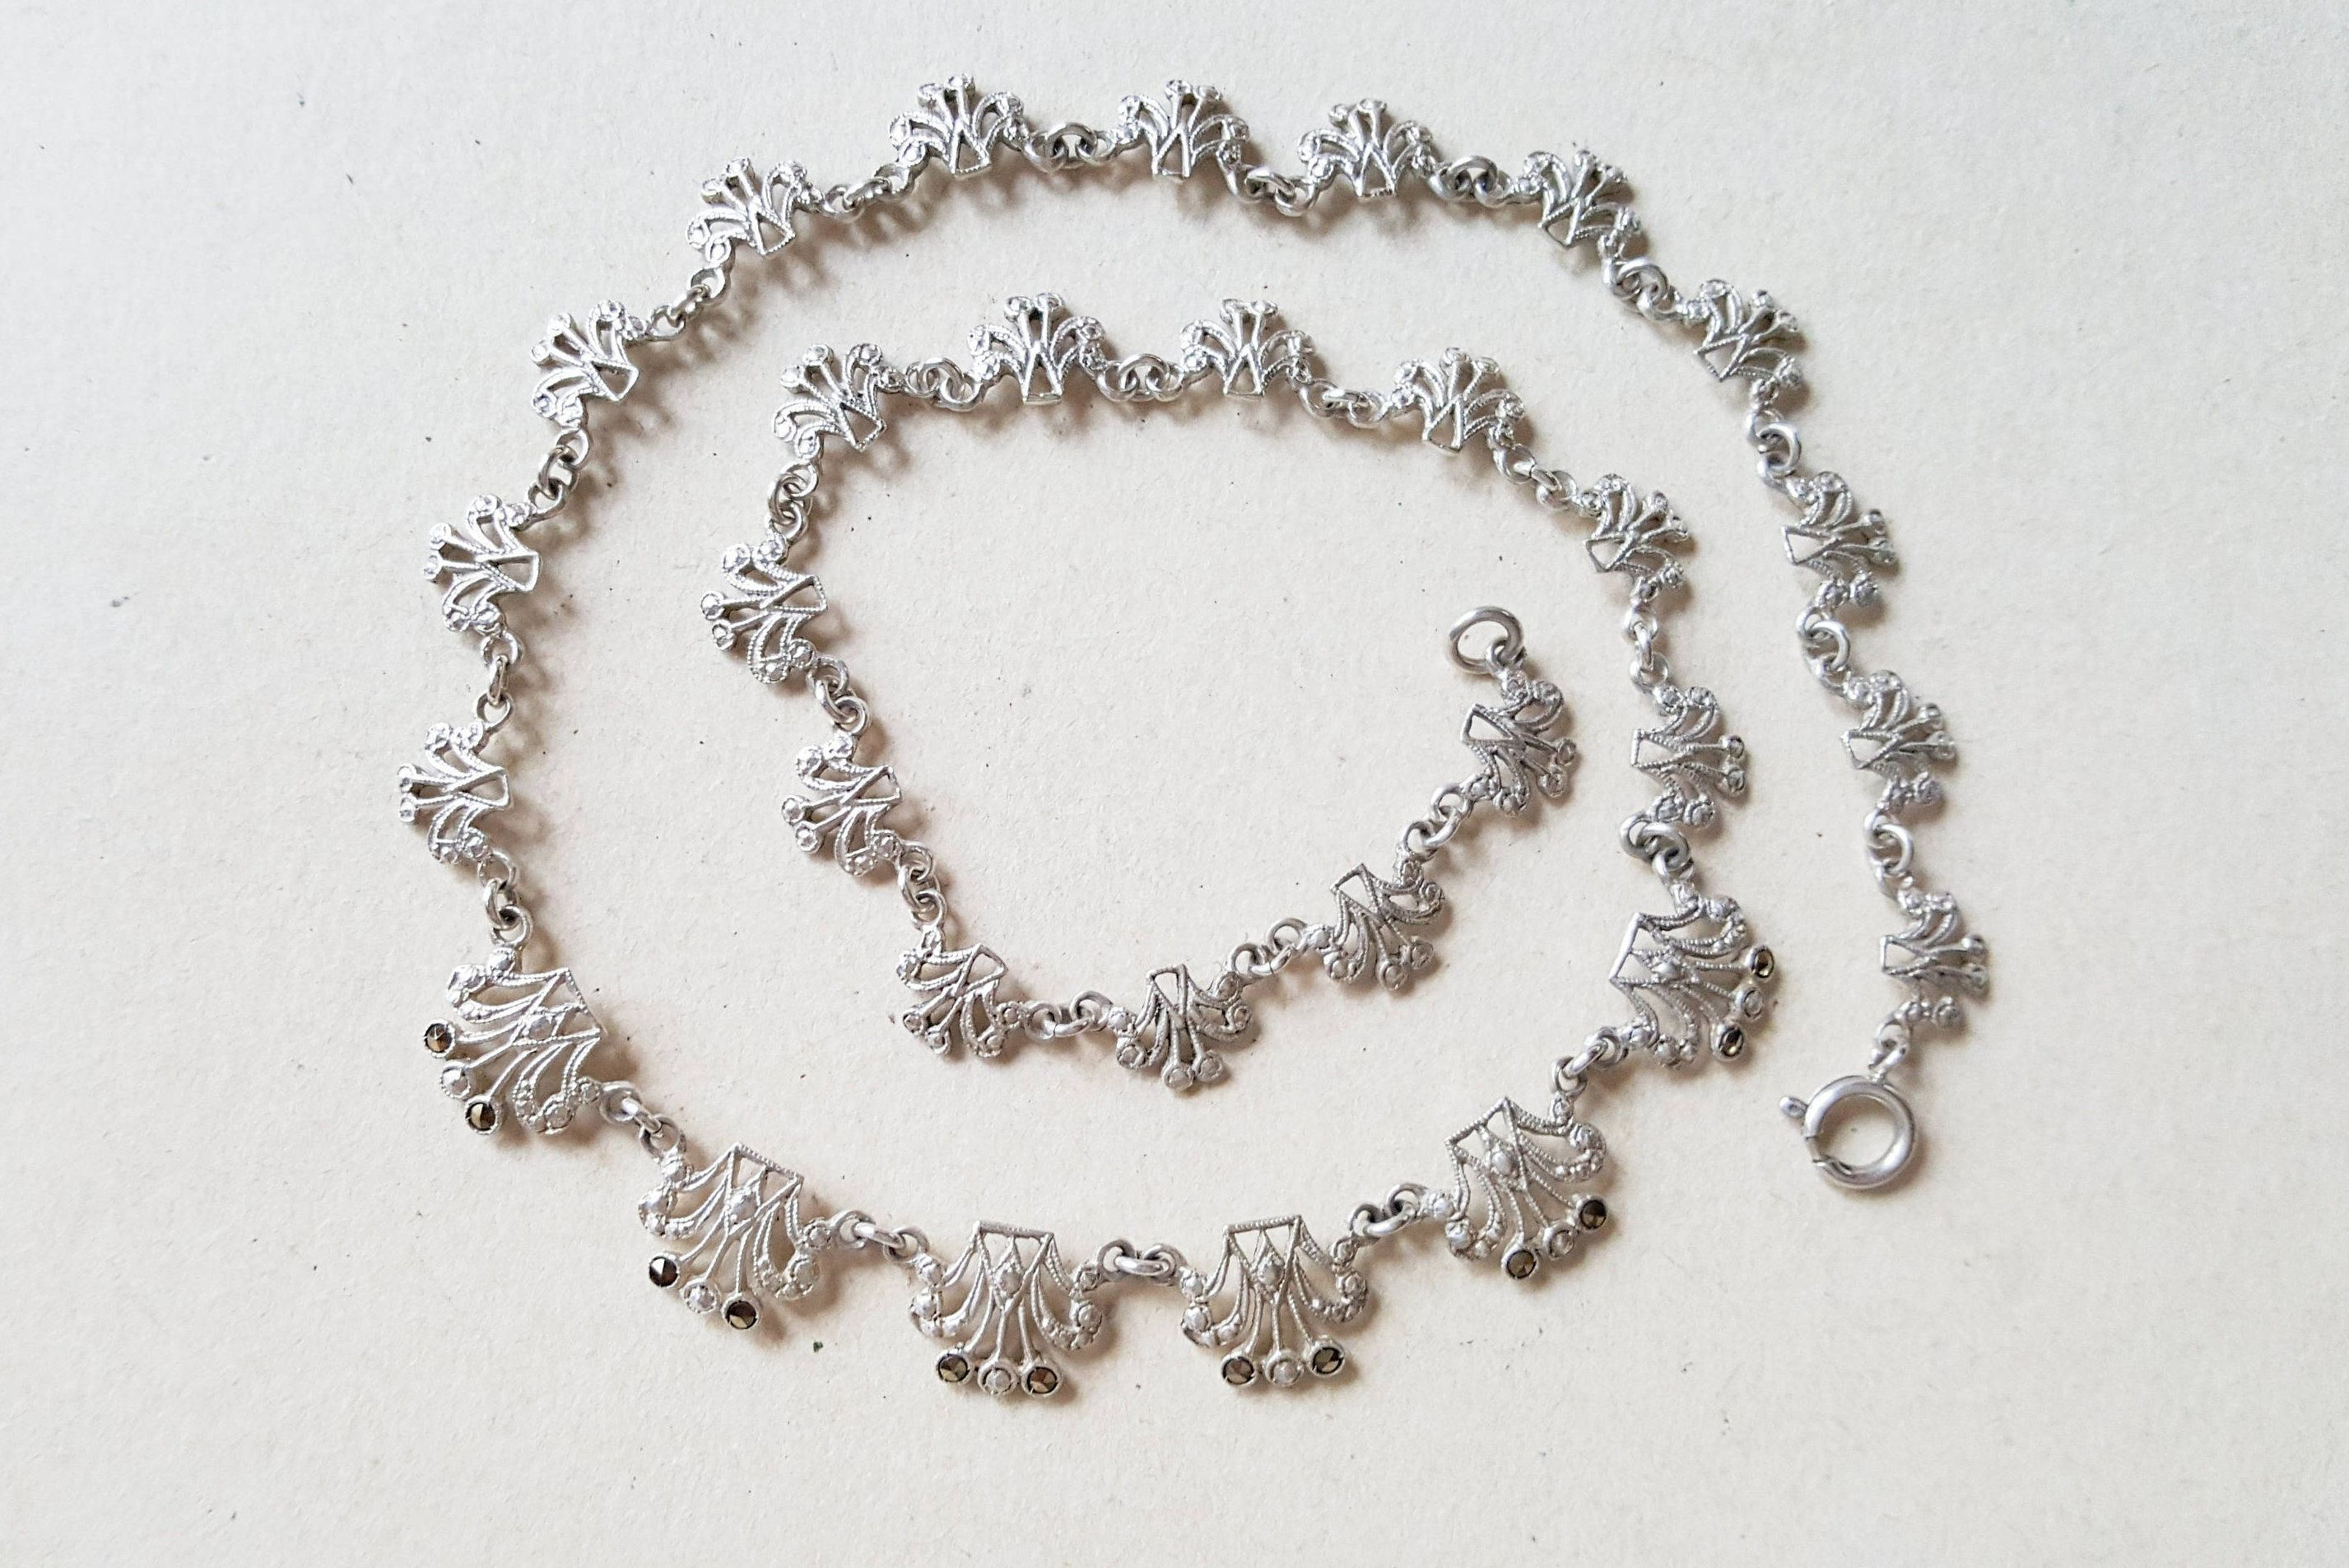 Vintage Silver And Marcasite Collier Necklace, Scandinavia, 1950S Regarding Recent Vintage Circle Collier Necklaces (View 25 of 25)